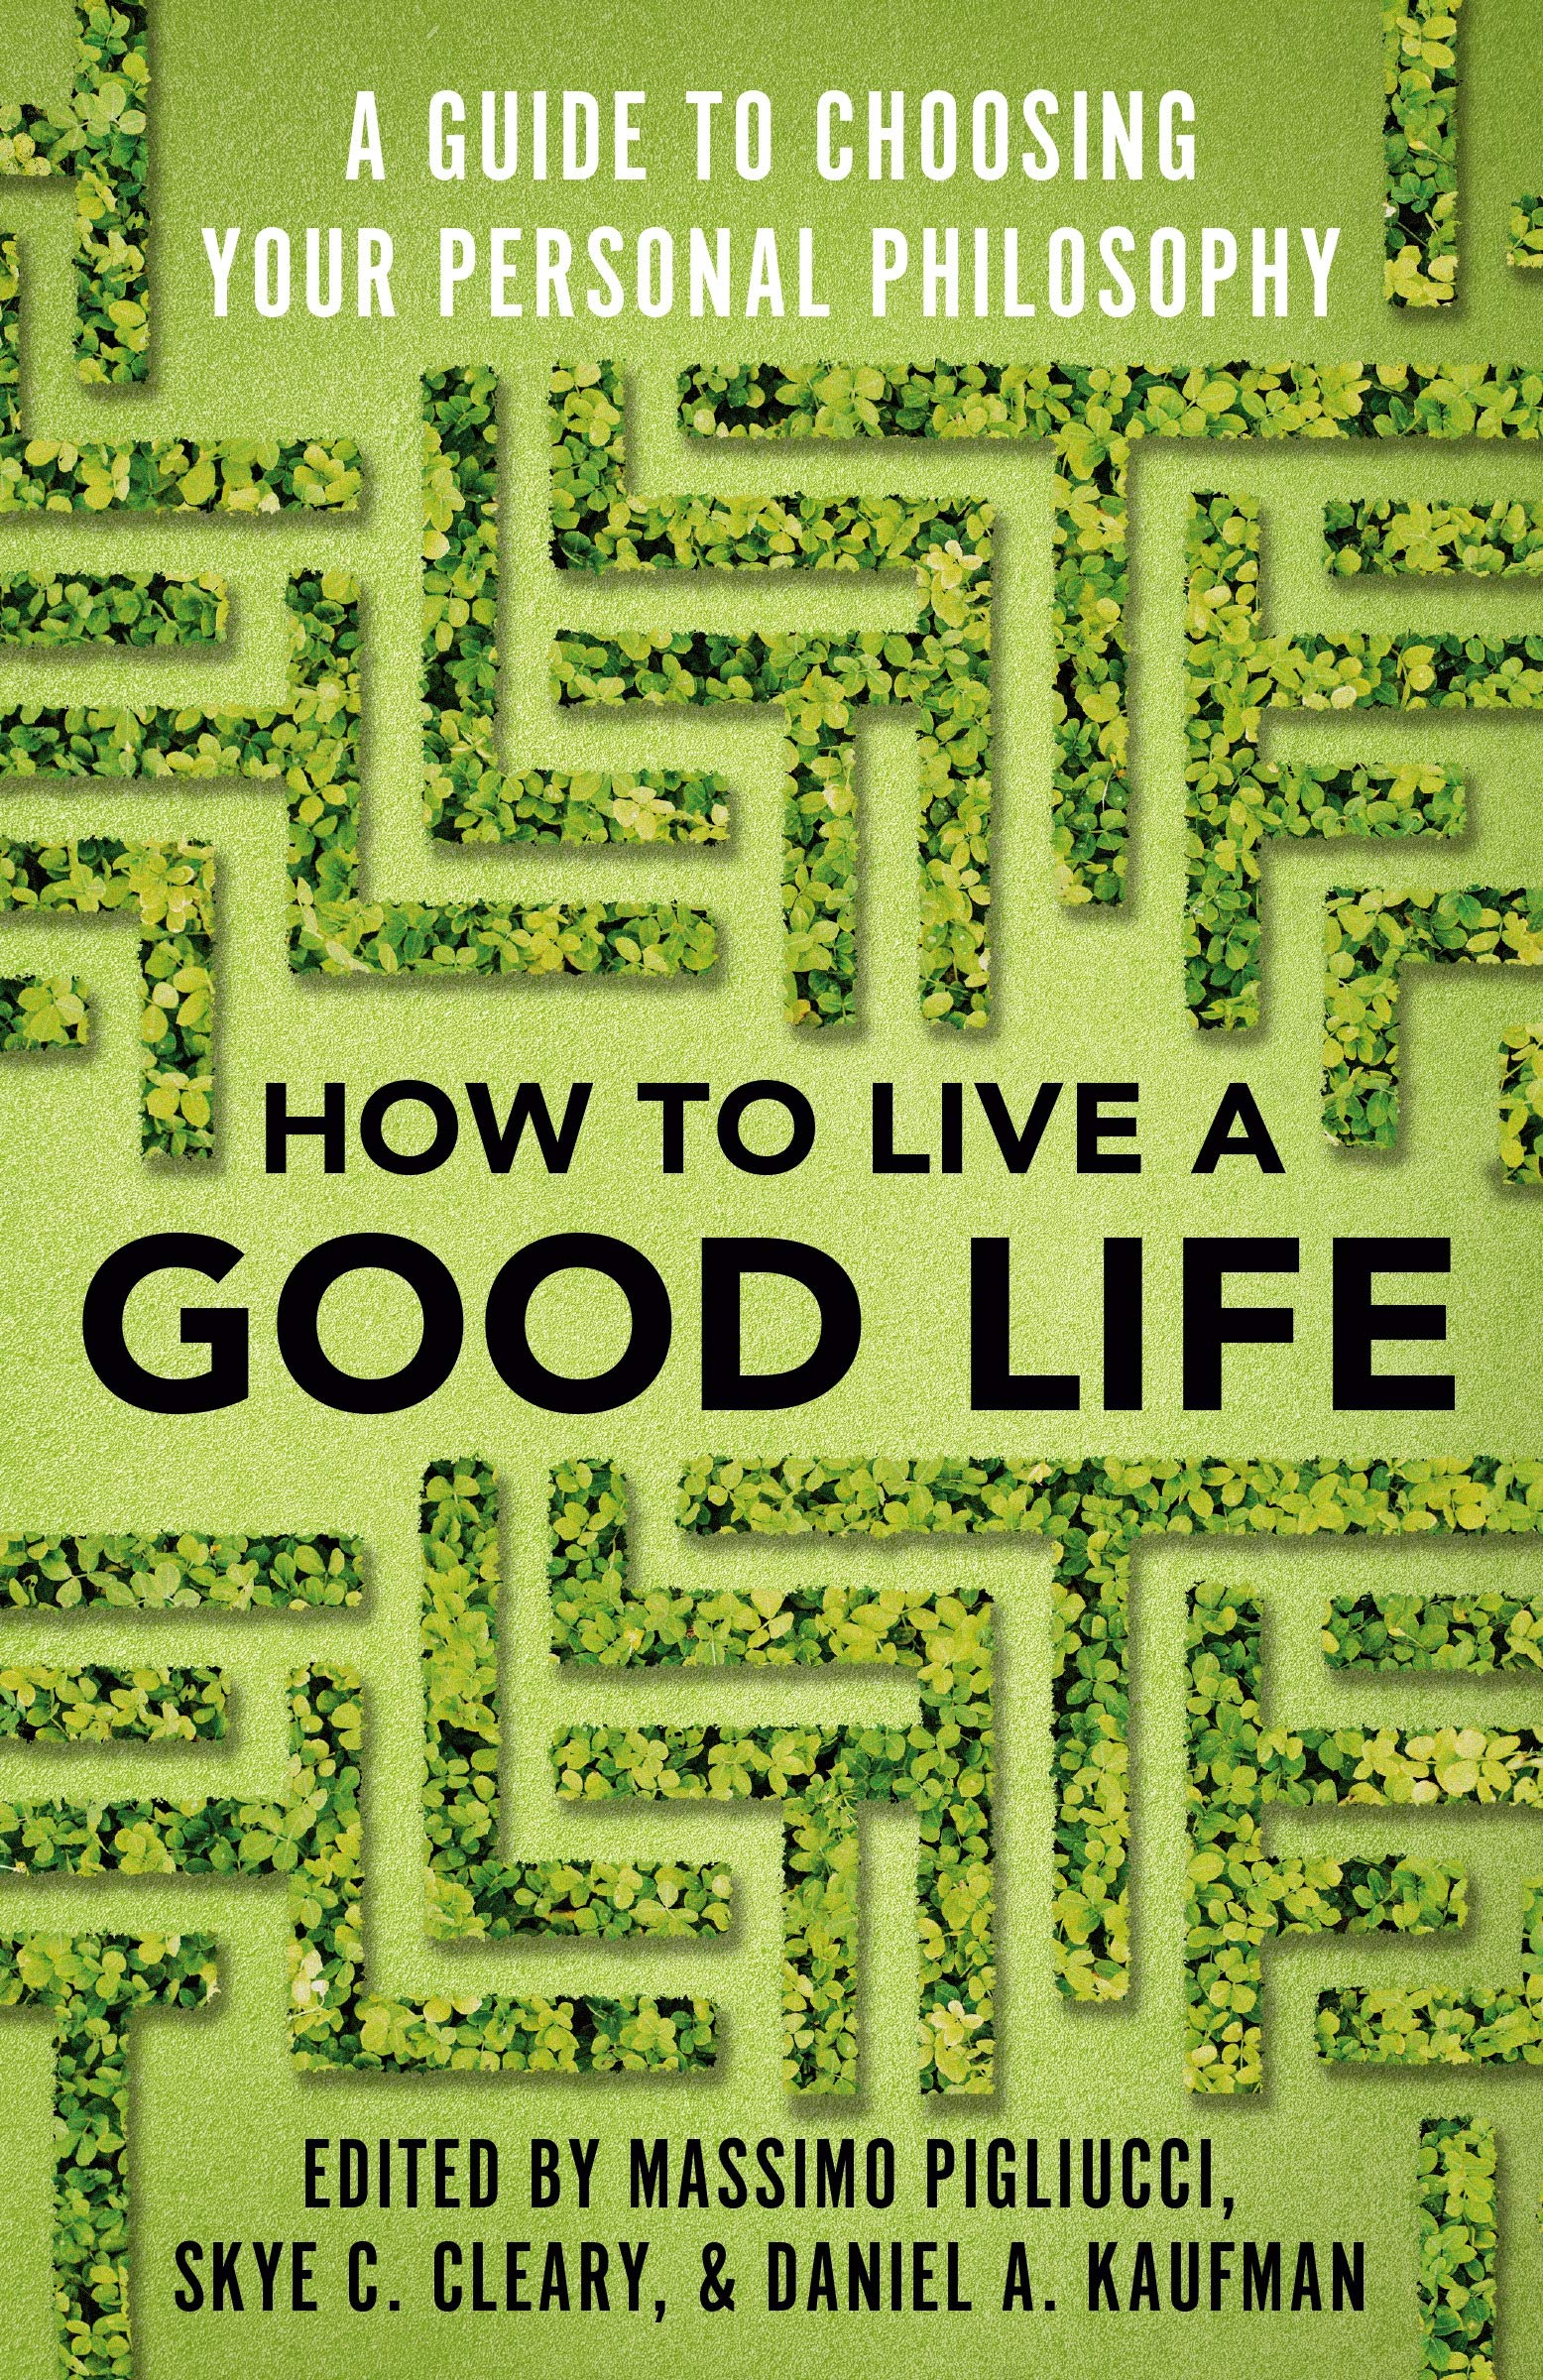 How to Live a Good Life, Pigliucci, Cleary & Kaufman